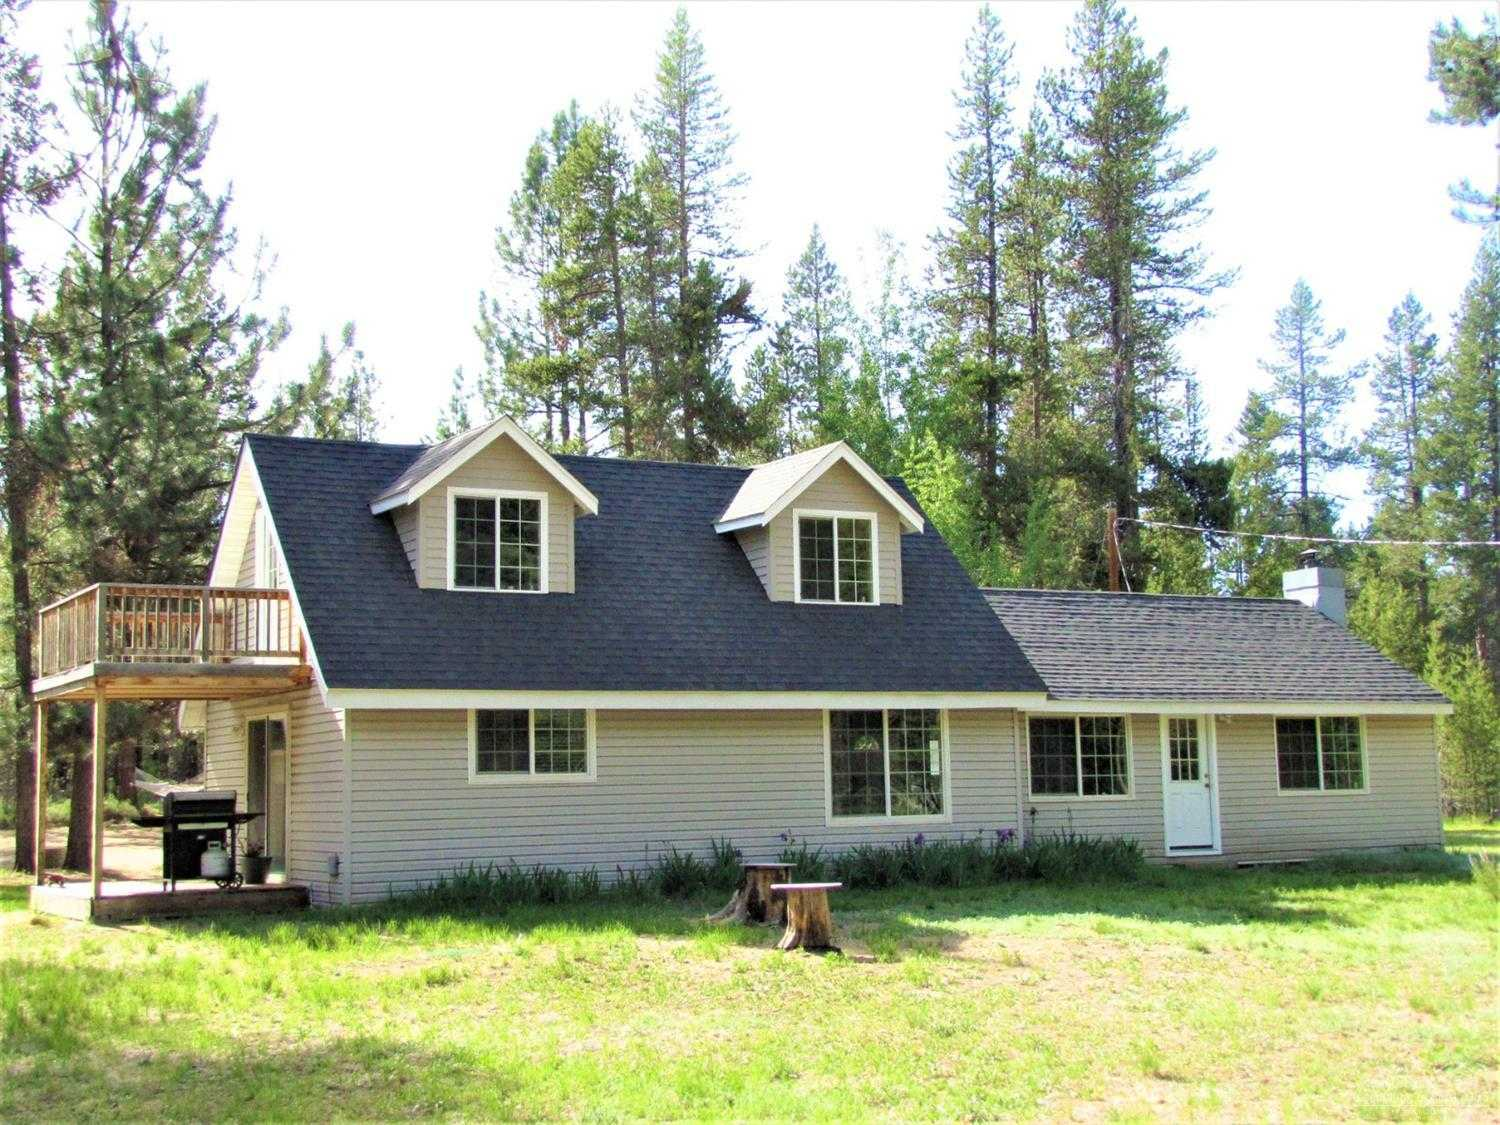 $349,900 - 3Br/1Ba -  for Sale in La Pine